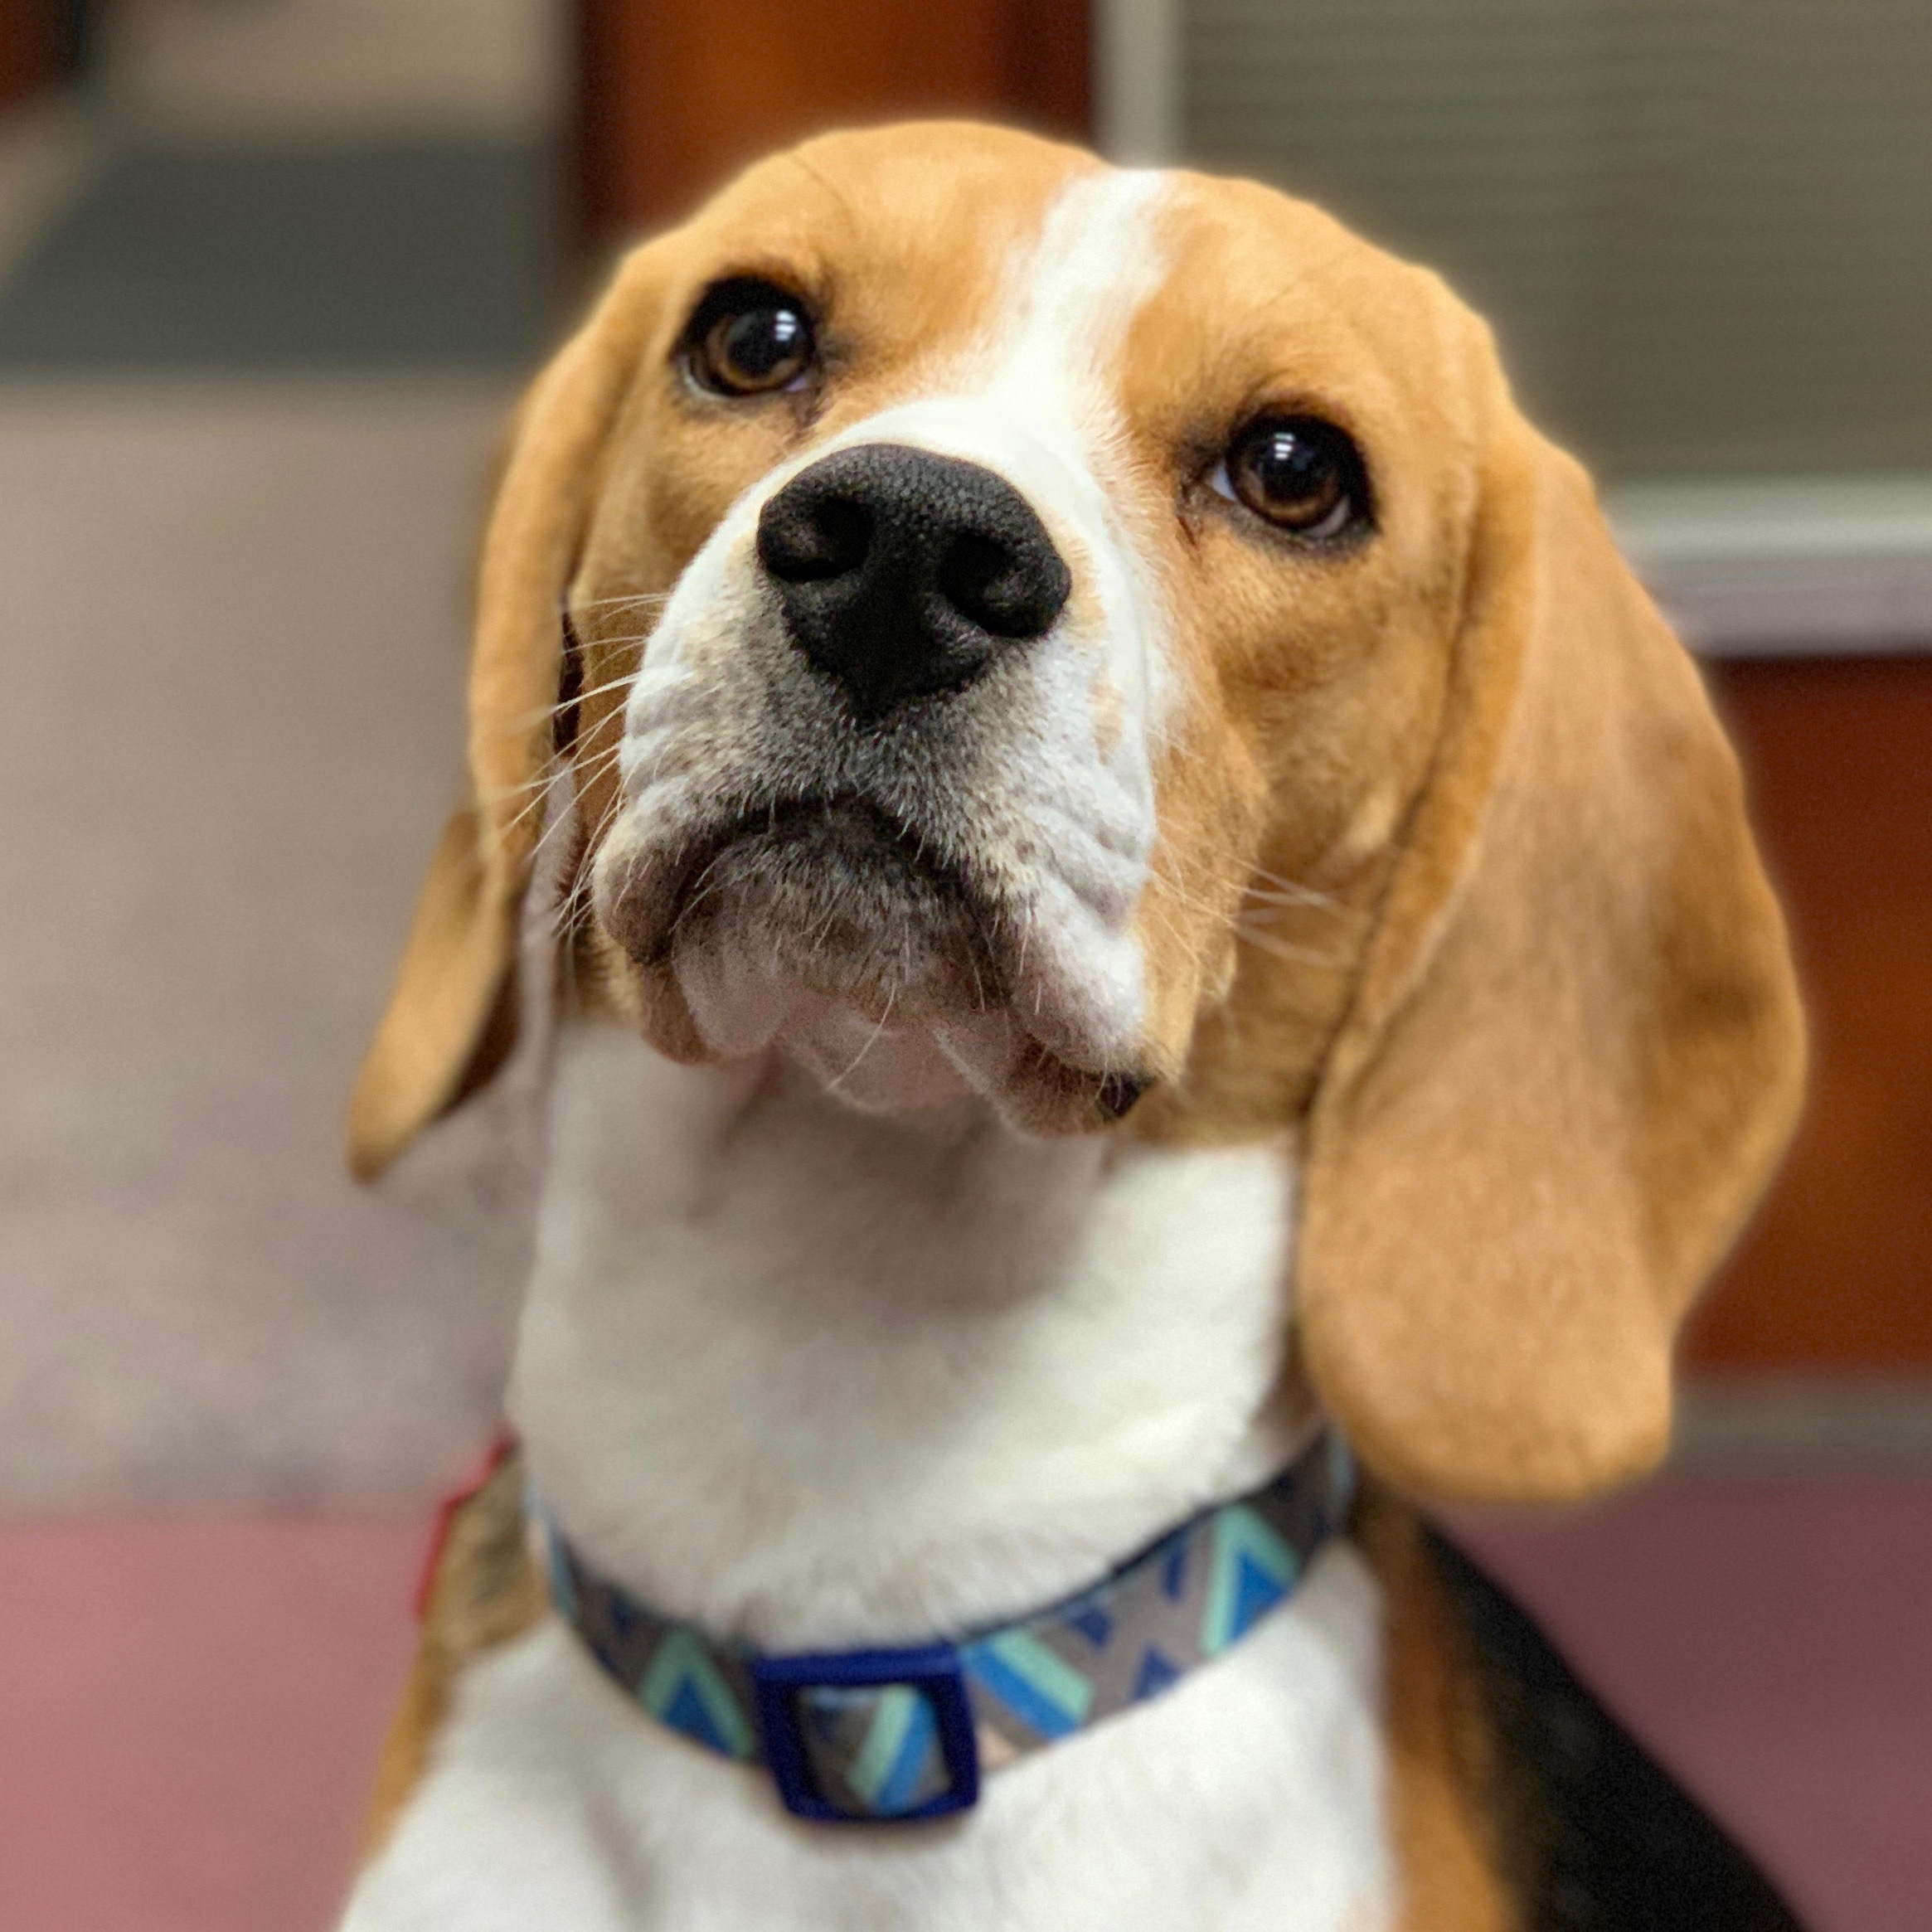 Riki the Beagle - Miss Riki is the accounting team mascot! She loves to raid trashcans and give nose boops!